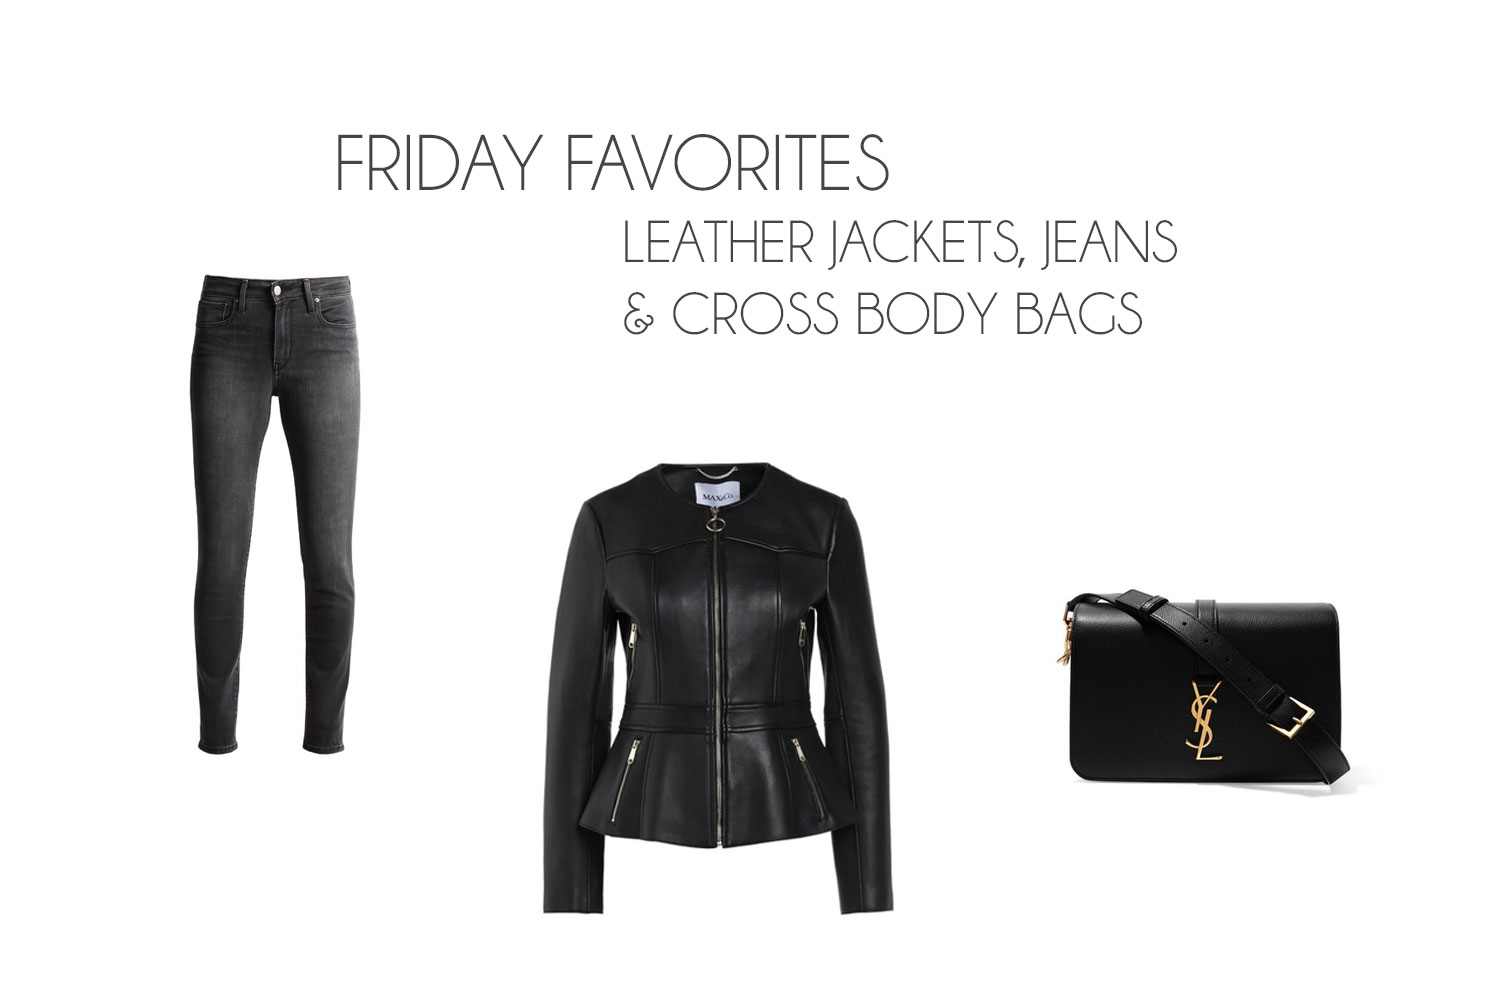 Friday Favorites: Leather Jackets, Jeans & Cross Body Bags - Friday Favorites 2